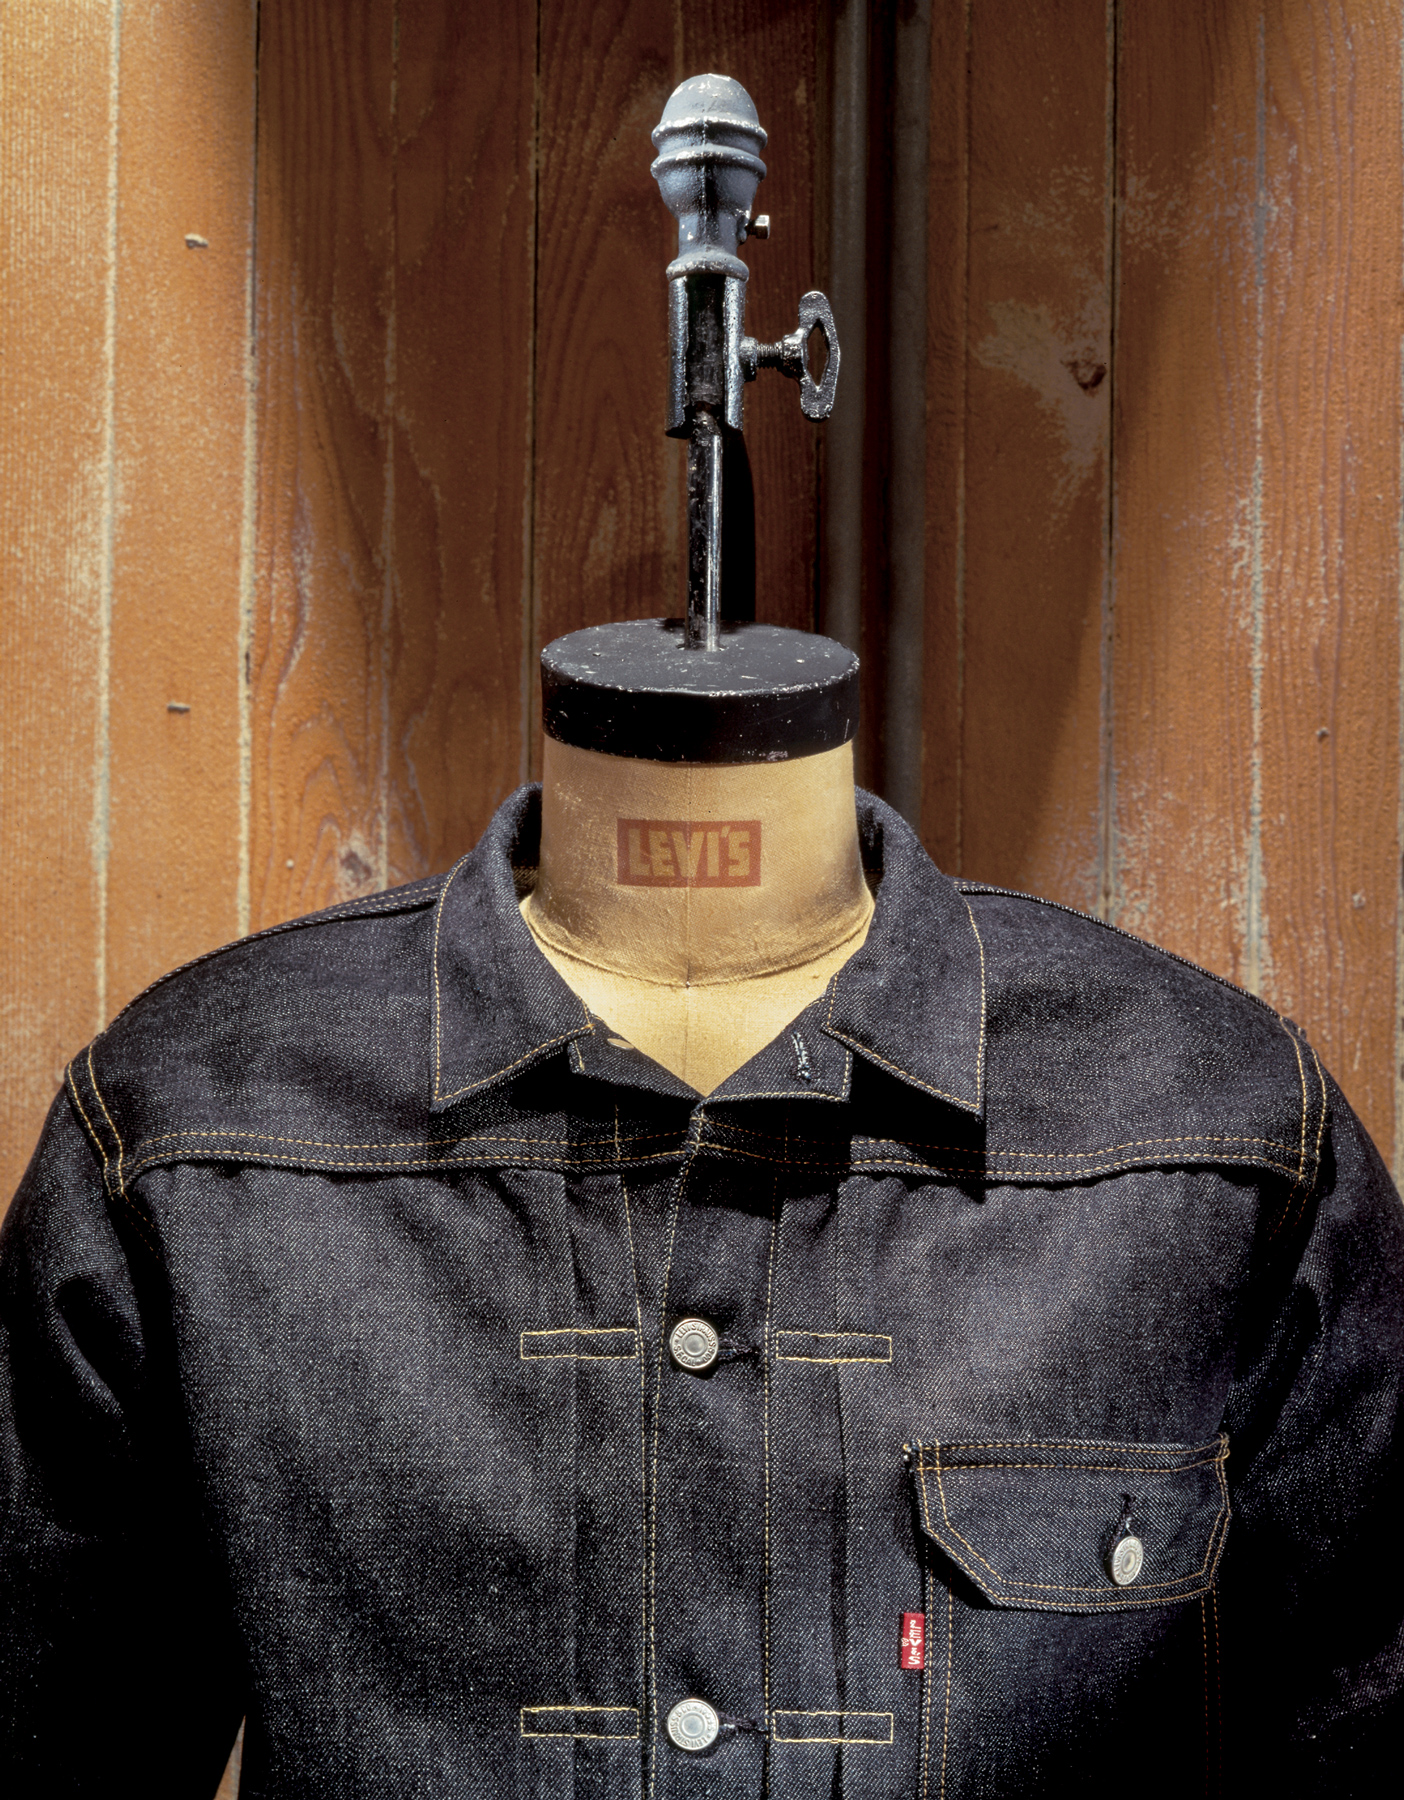 Levis denim product display in retail store